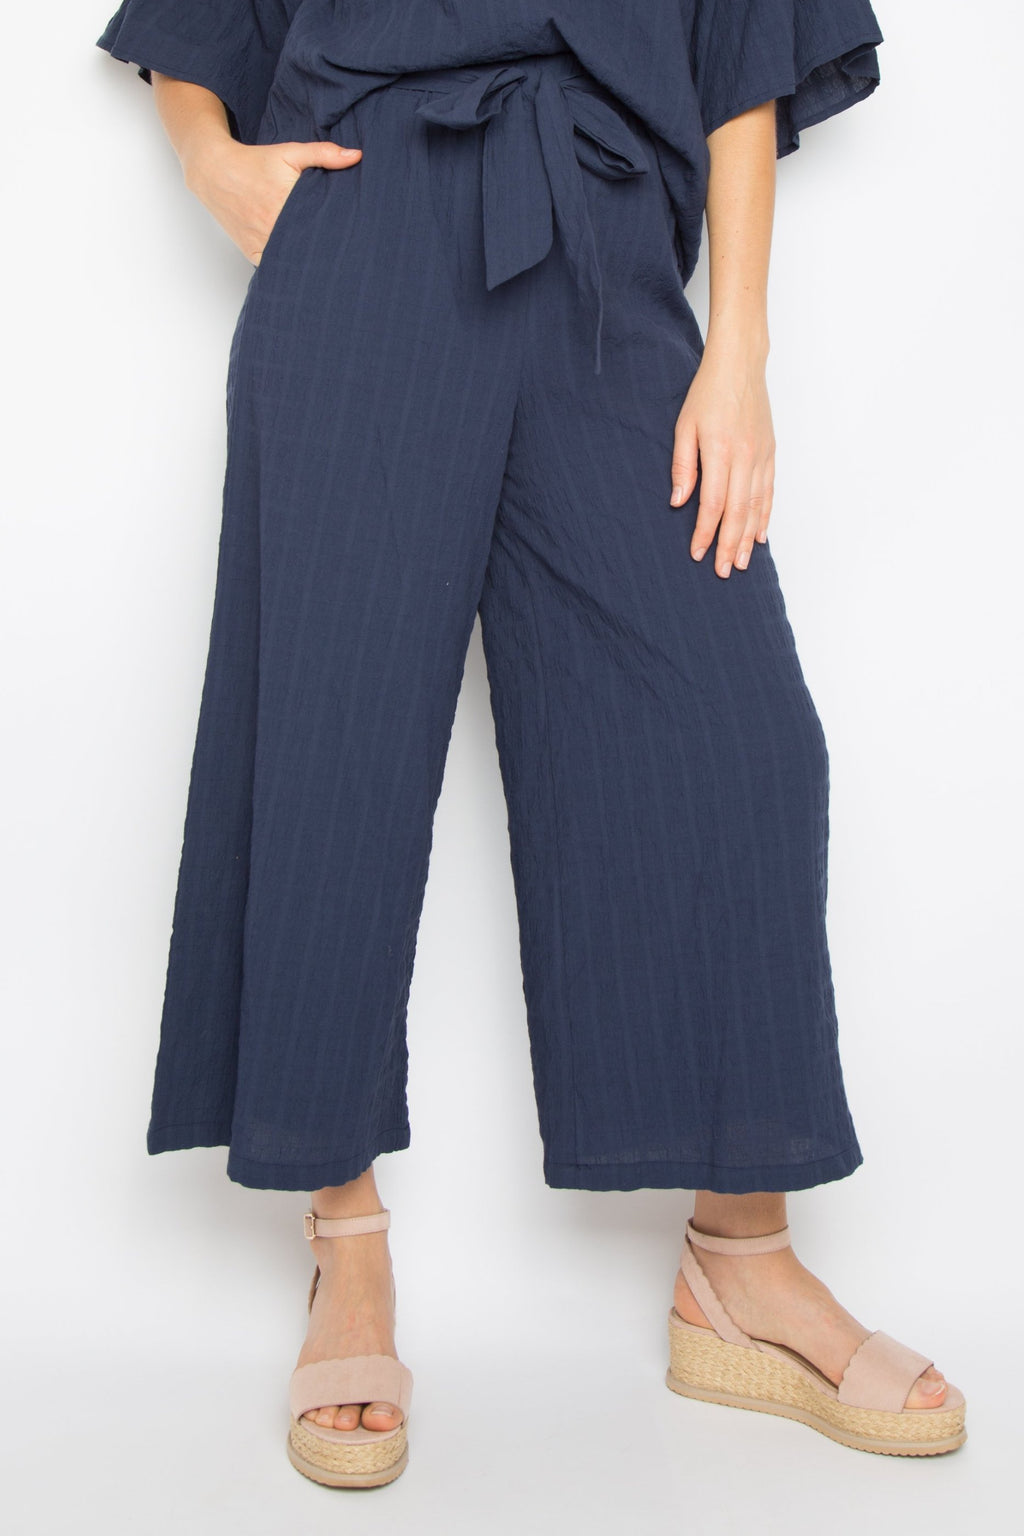 The Essential Pant in Crinkle Navy